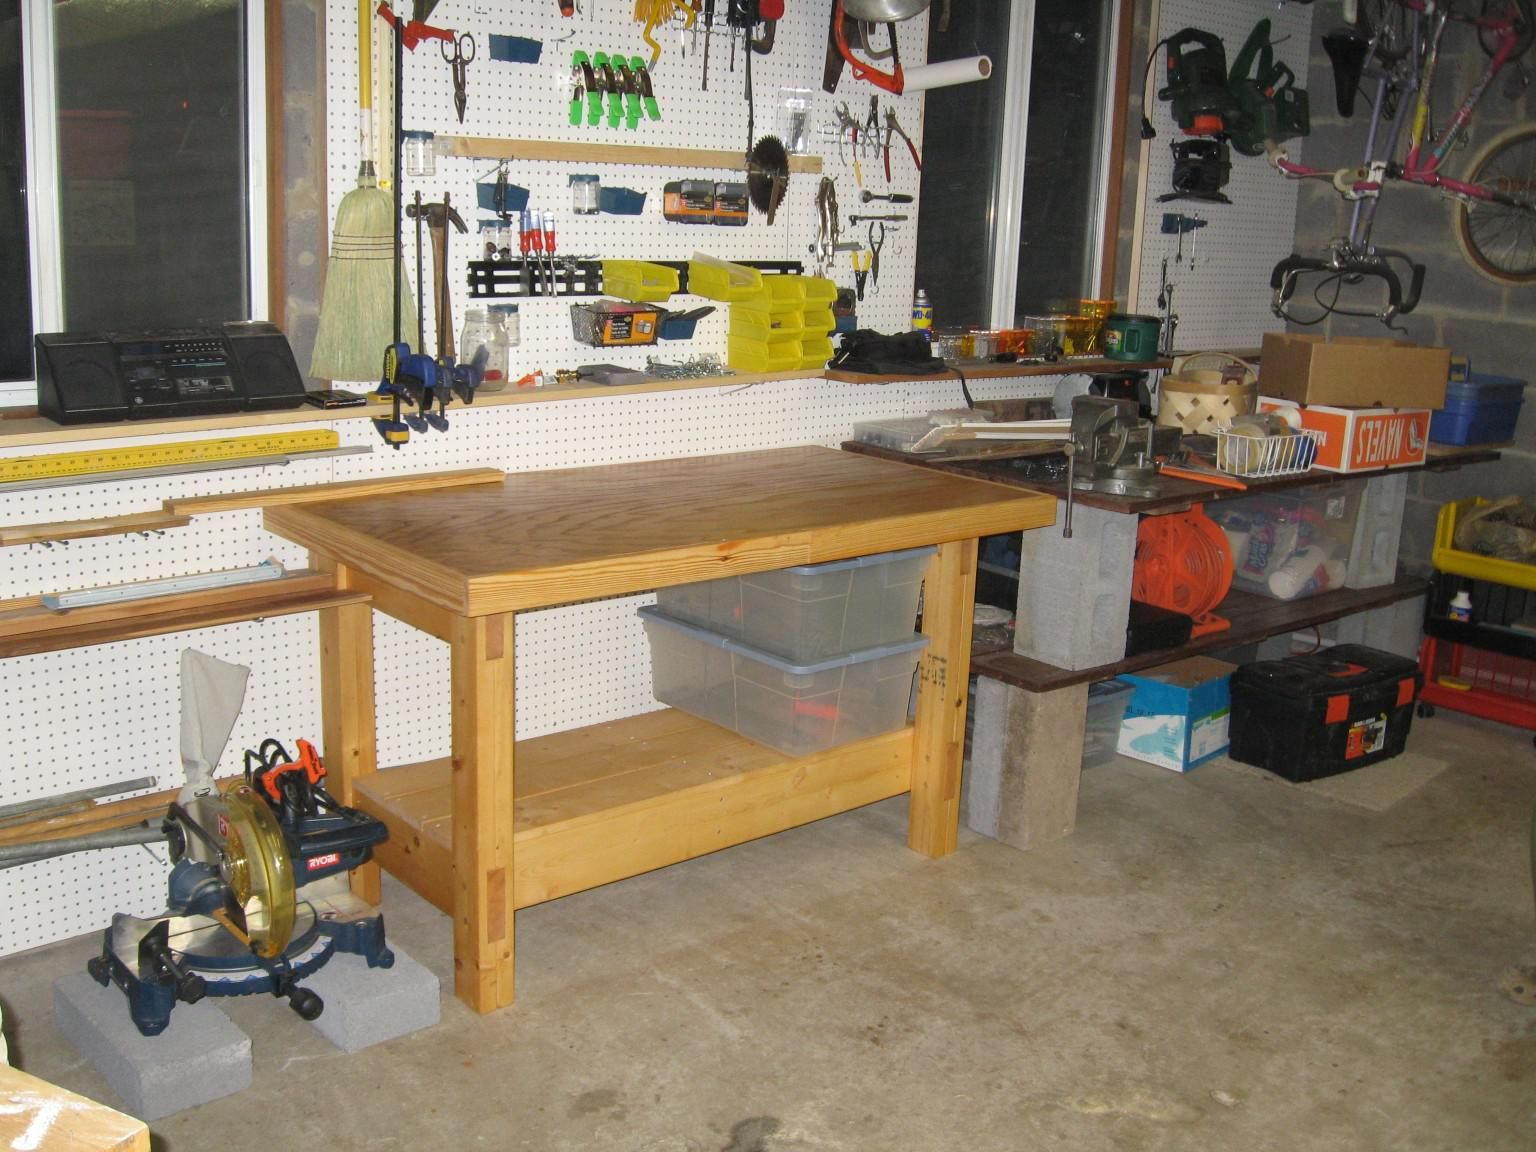 Diy garage workbench ideas come home in decorations woodworking